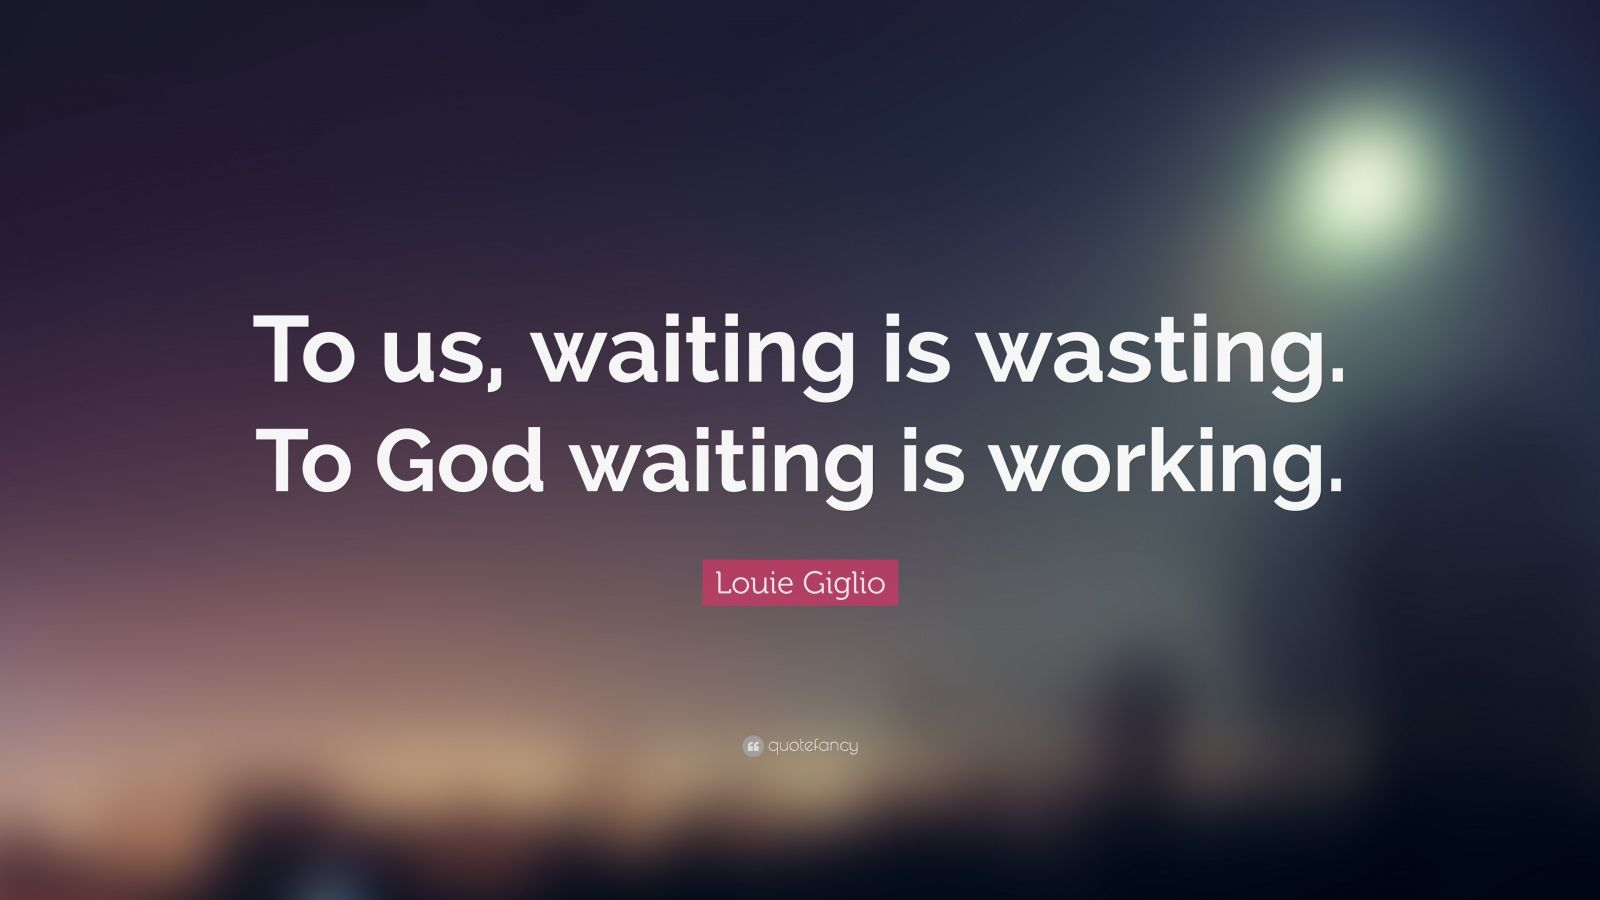 Peace Quotes Wallpapers Hd Louie Giglio Quote To Us Waiting Is Wasting To God